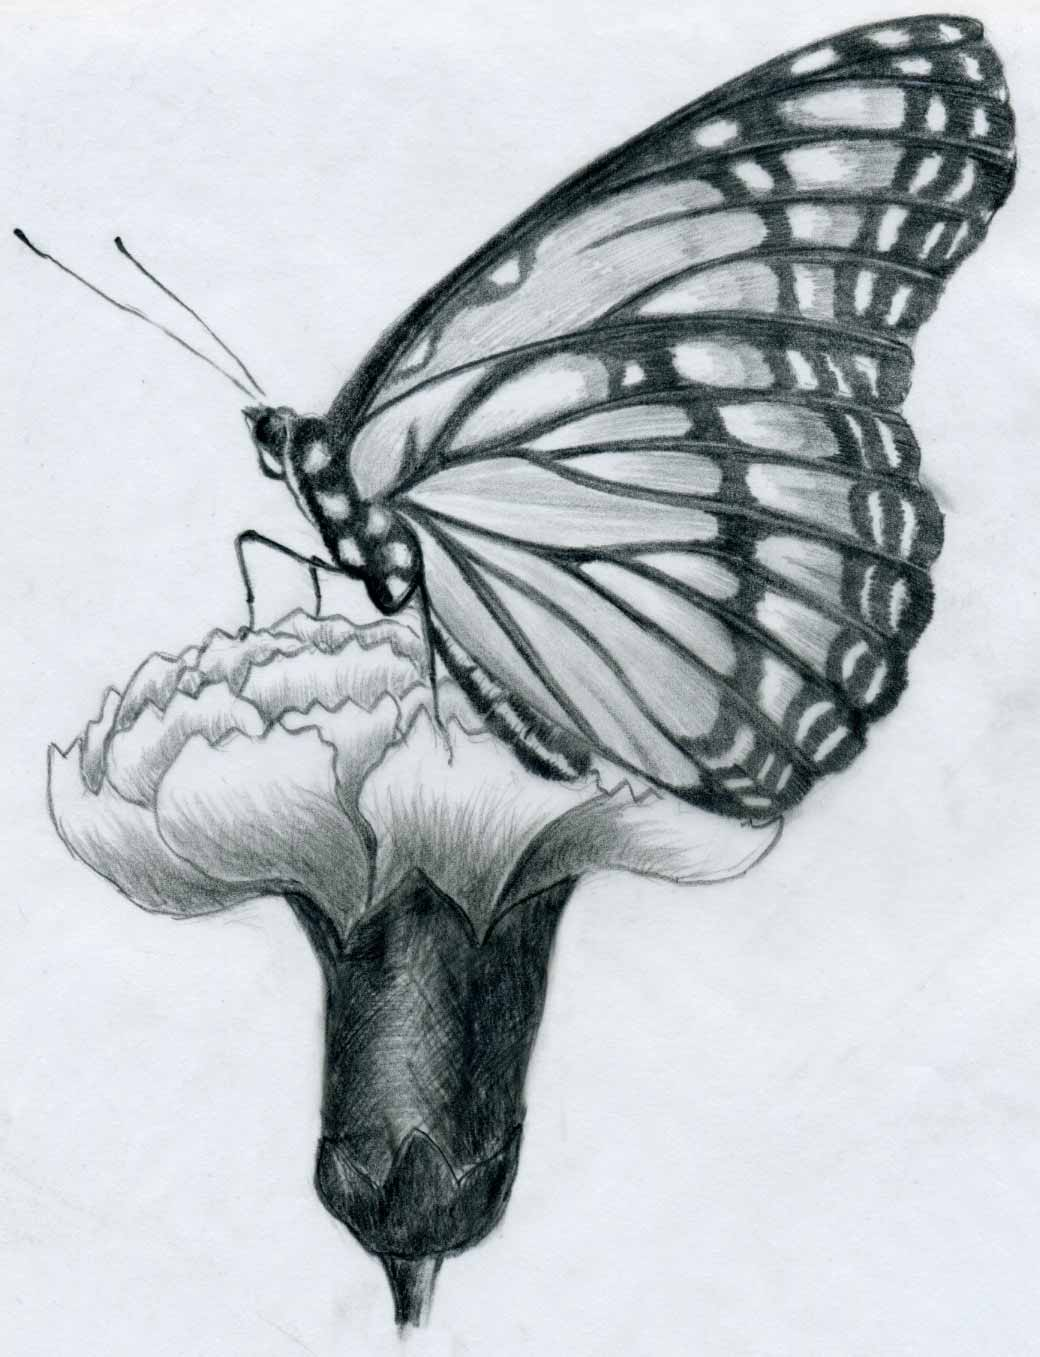 Pencil Drawings Of Flowers And Butterflies : pencil, drawings, flowers, butterflies, Butterfly, Flower, Pencil, Drawing, Image